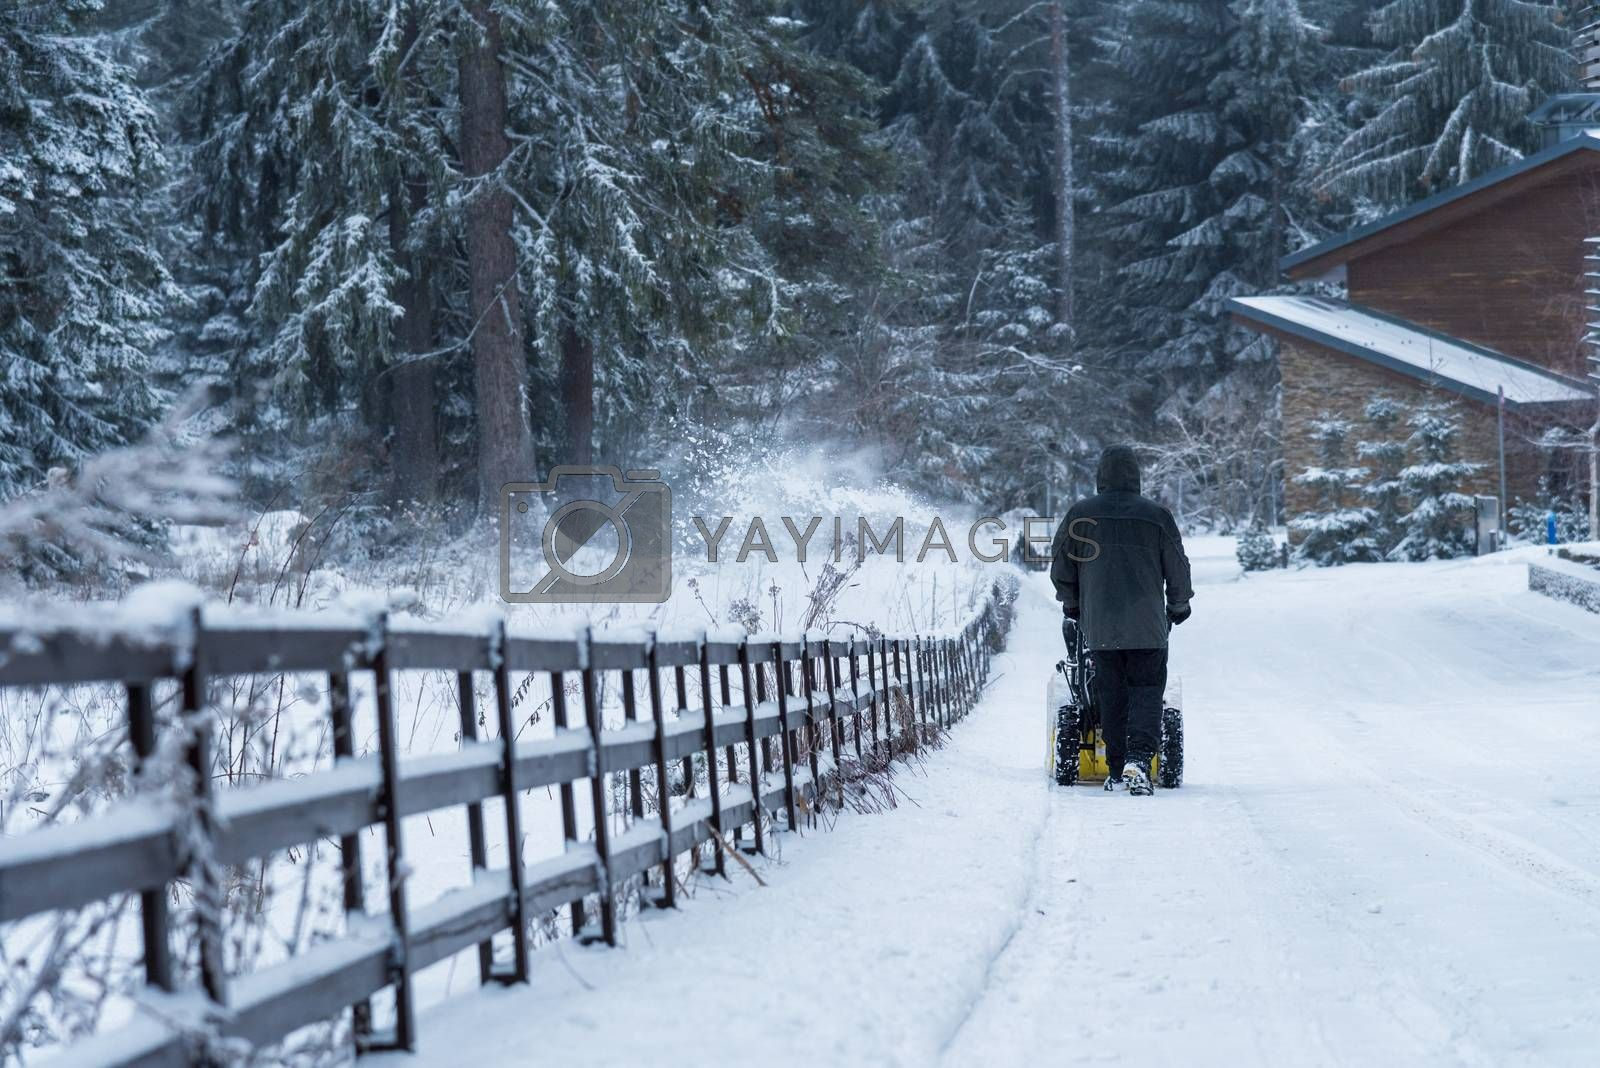 Man clears snow with snowblower after winter snowfall. by ba11istic